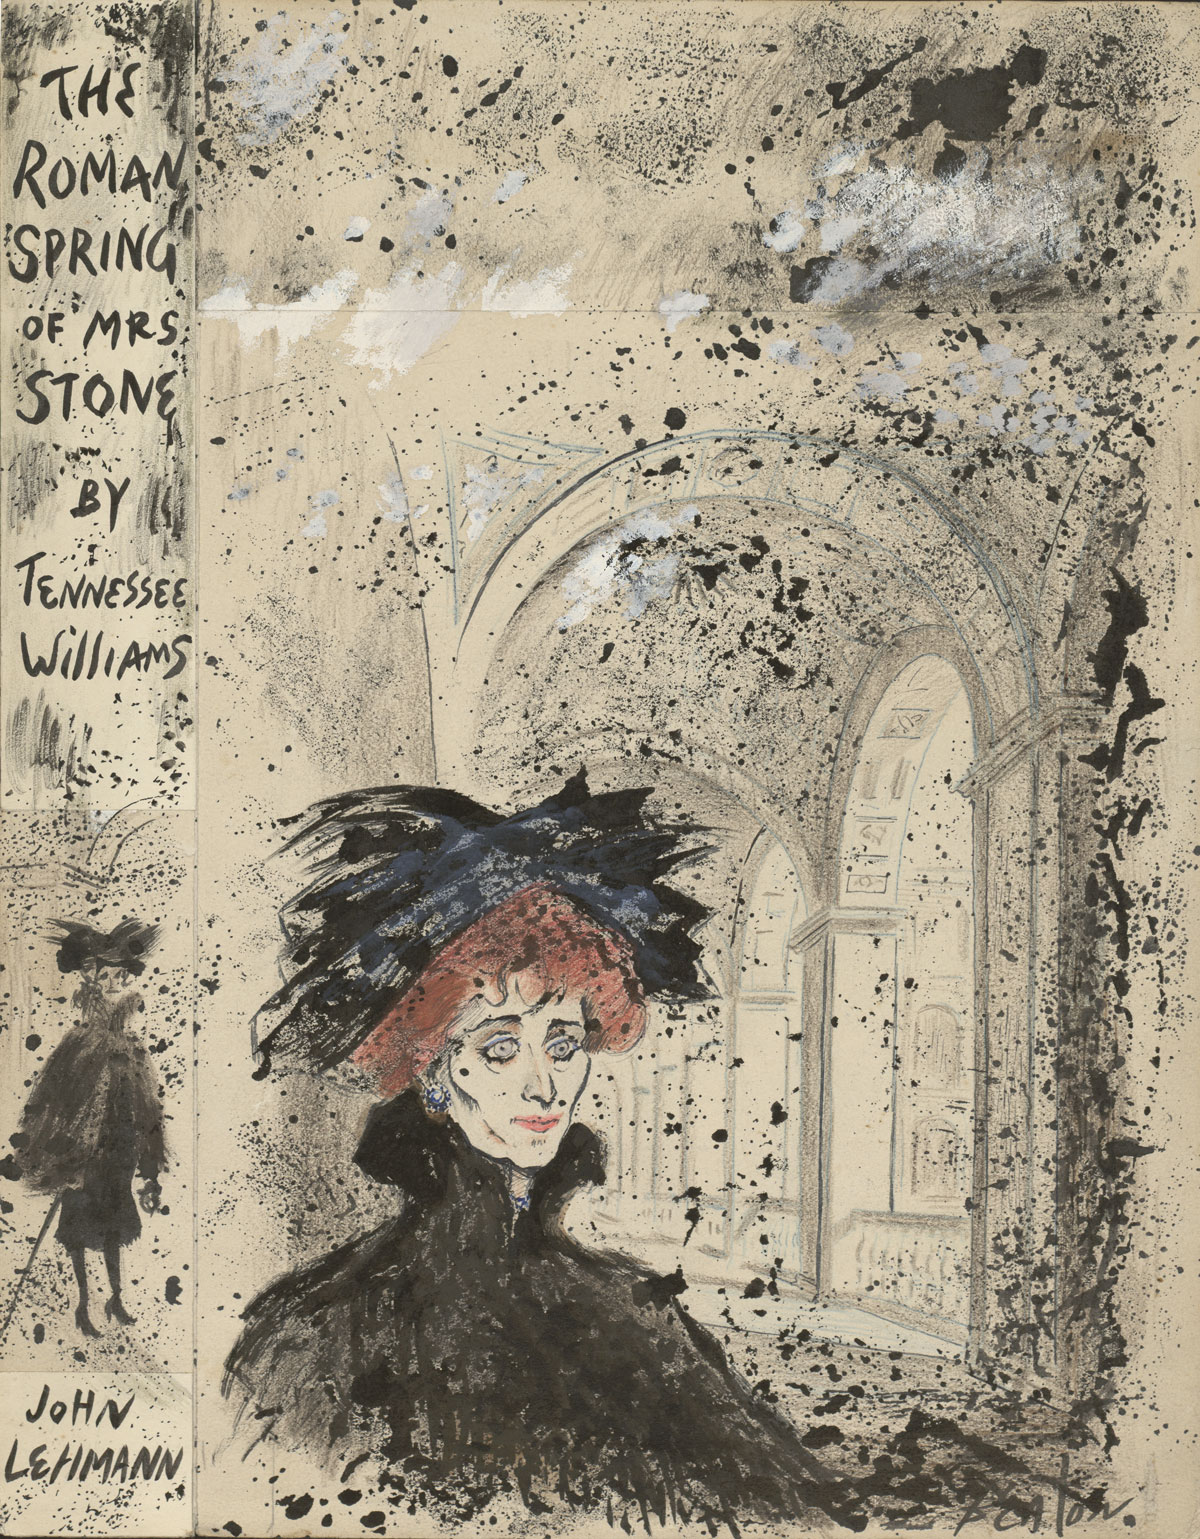 Sir Cecil Beaton (British, 1904-1980) The Roman Spring of Mrs. Stone, ca. 1950s Ink, crayon, and gouache on paper 14 1/4 x 11 1/8 inches. (c) National Portrait Gallery London